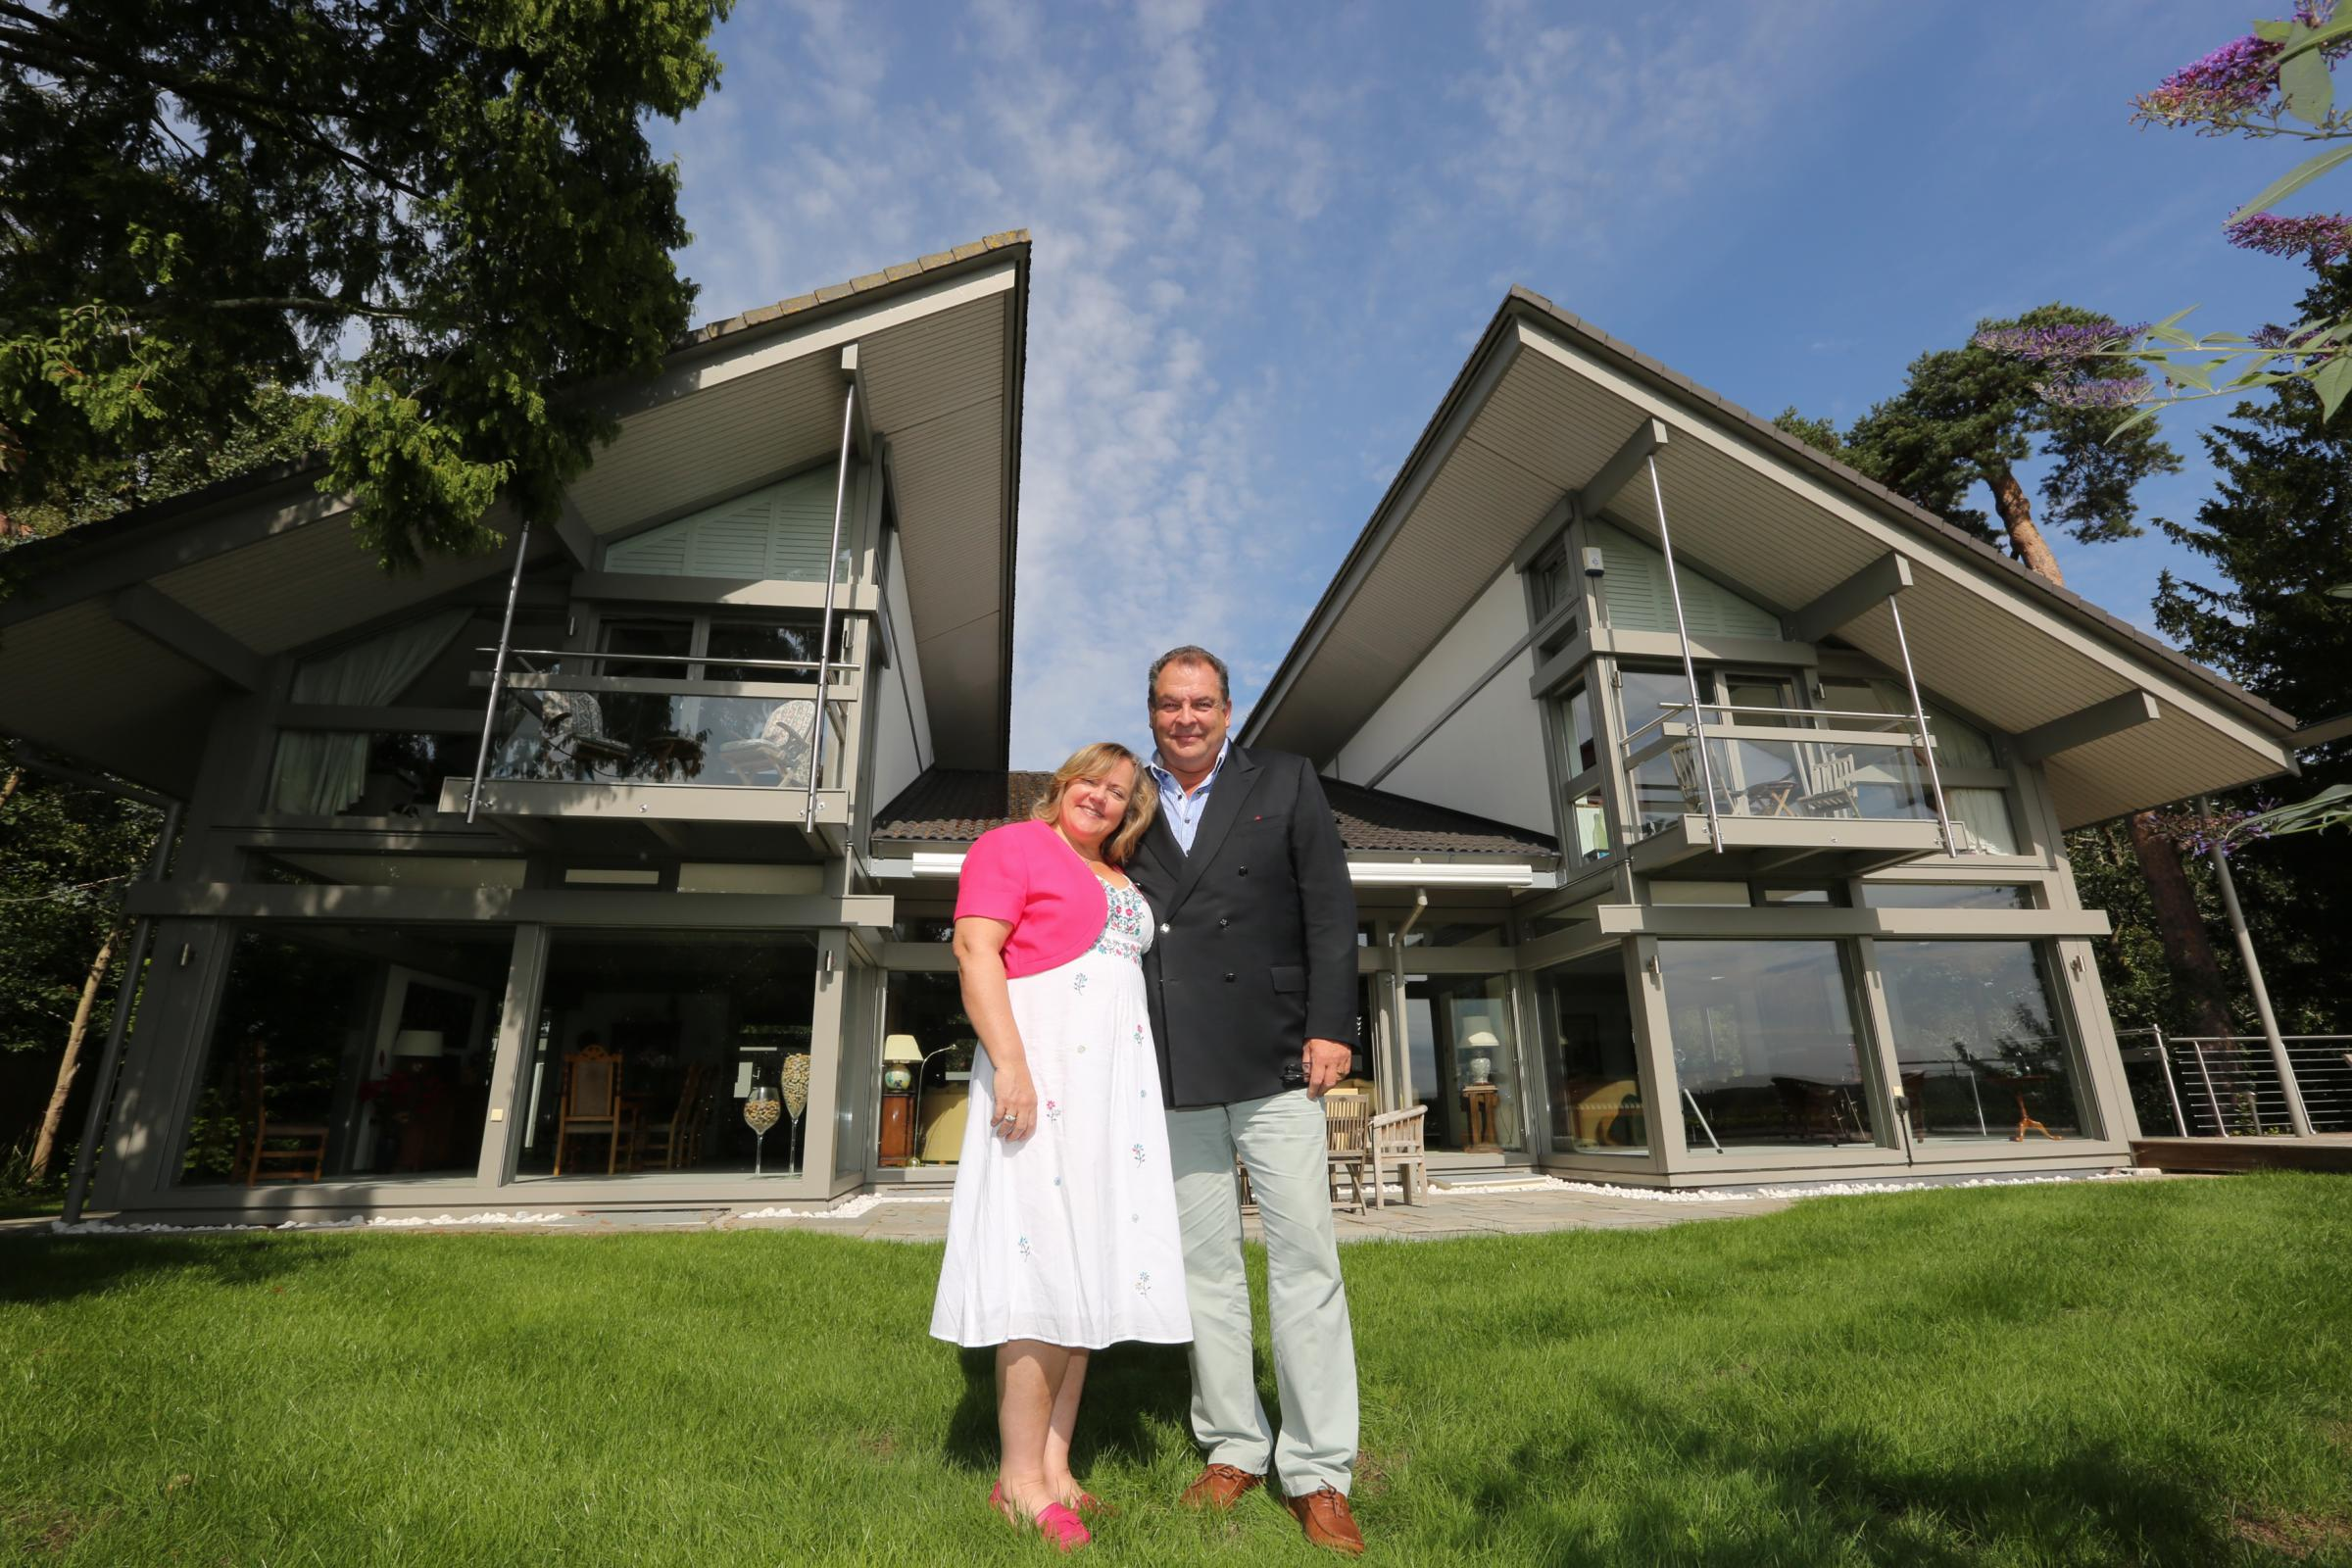 Mark and Sharon Beresford who are selling their home through a competition